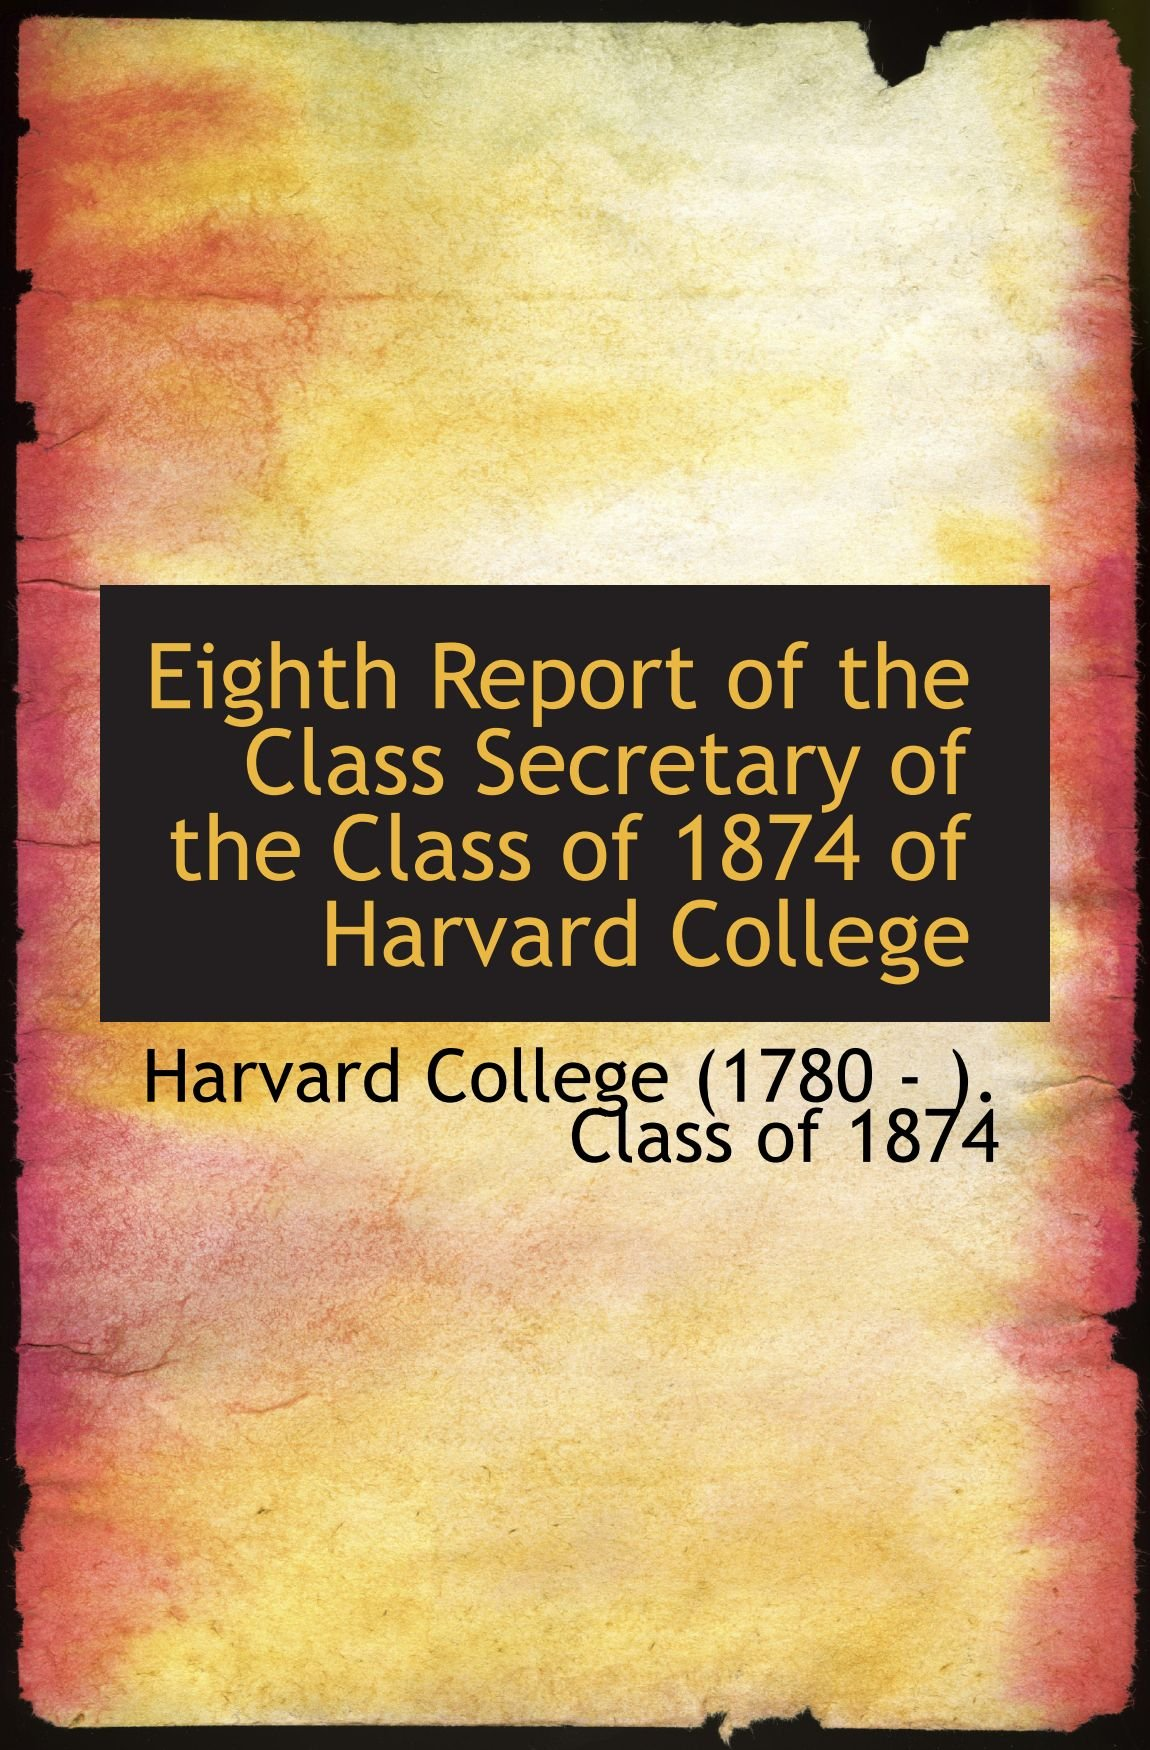 Eighth Report of the Class Secretary of the Class of 1874 of Harvard College ebook